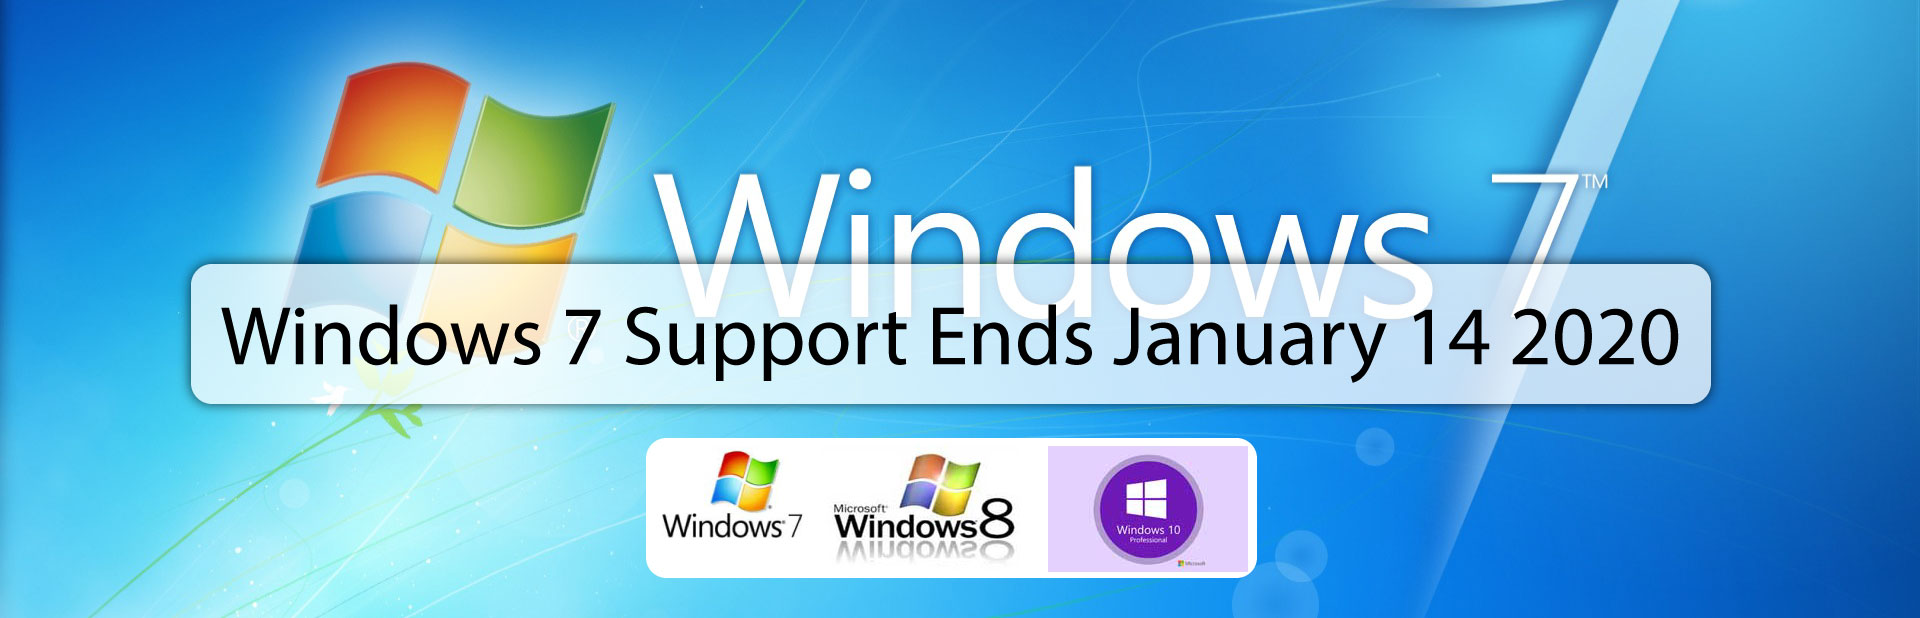 Windows 7 support ends January 14 2020